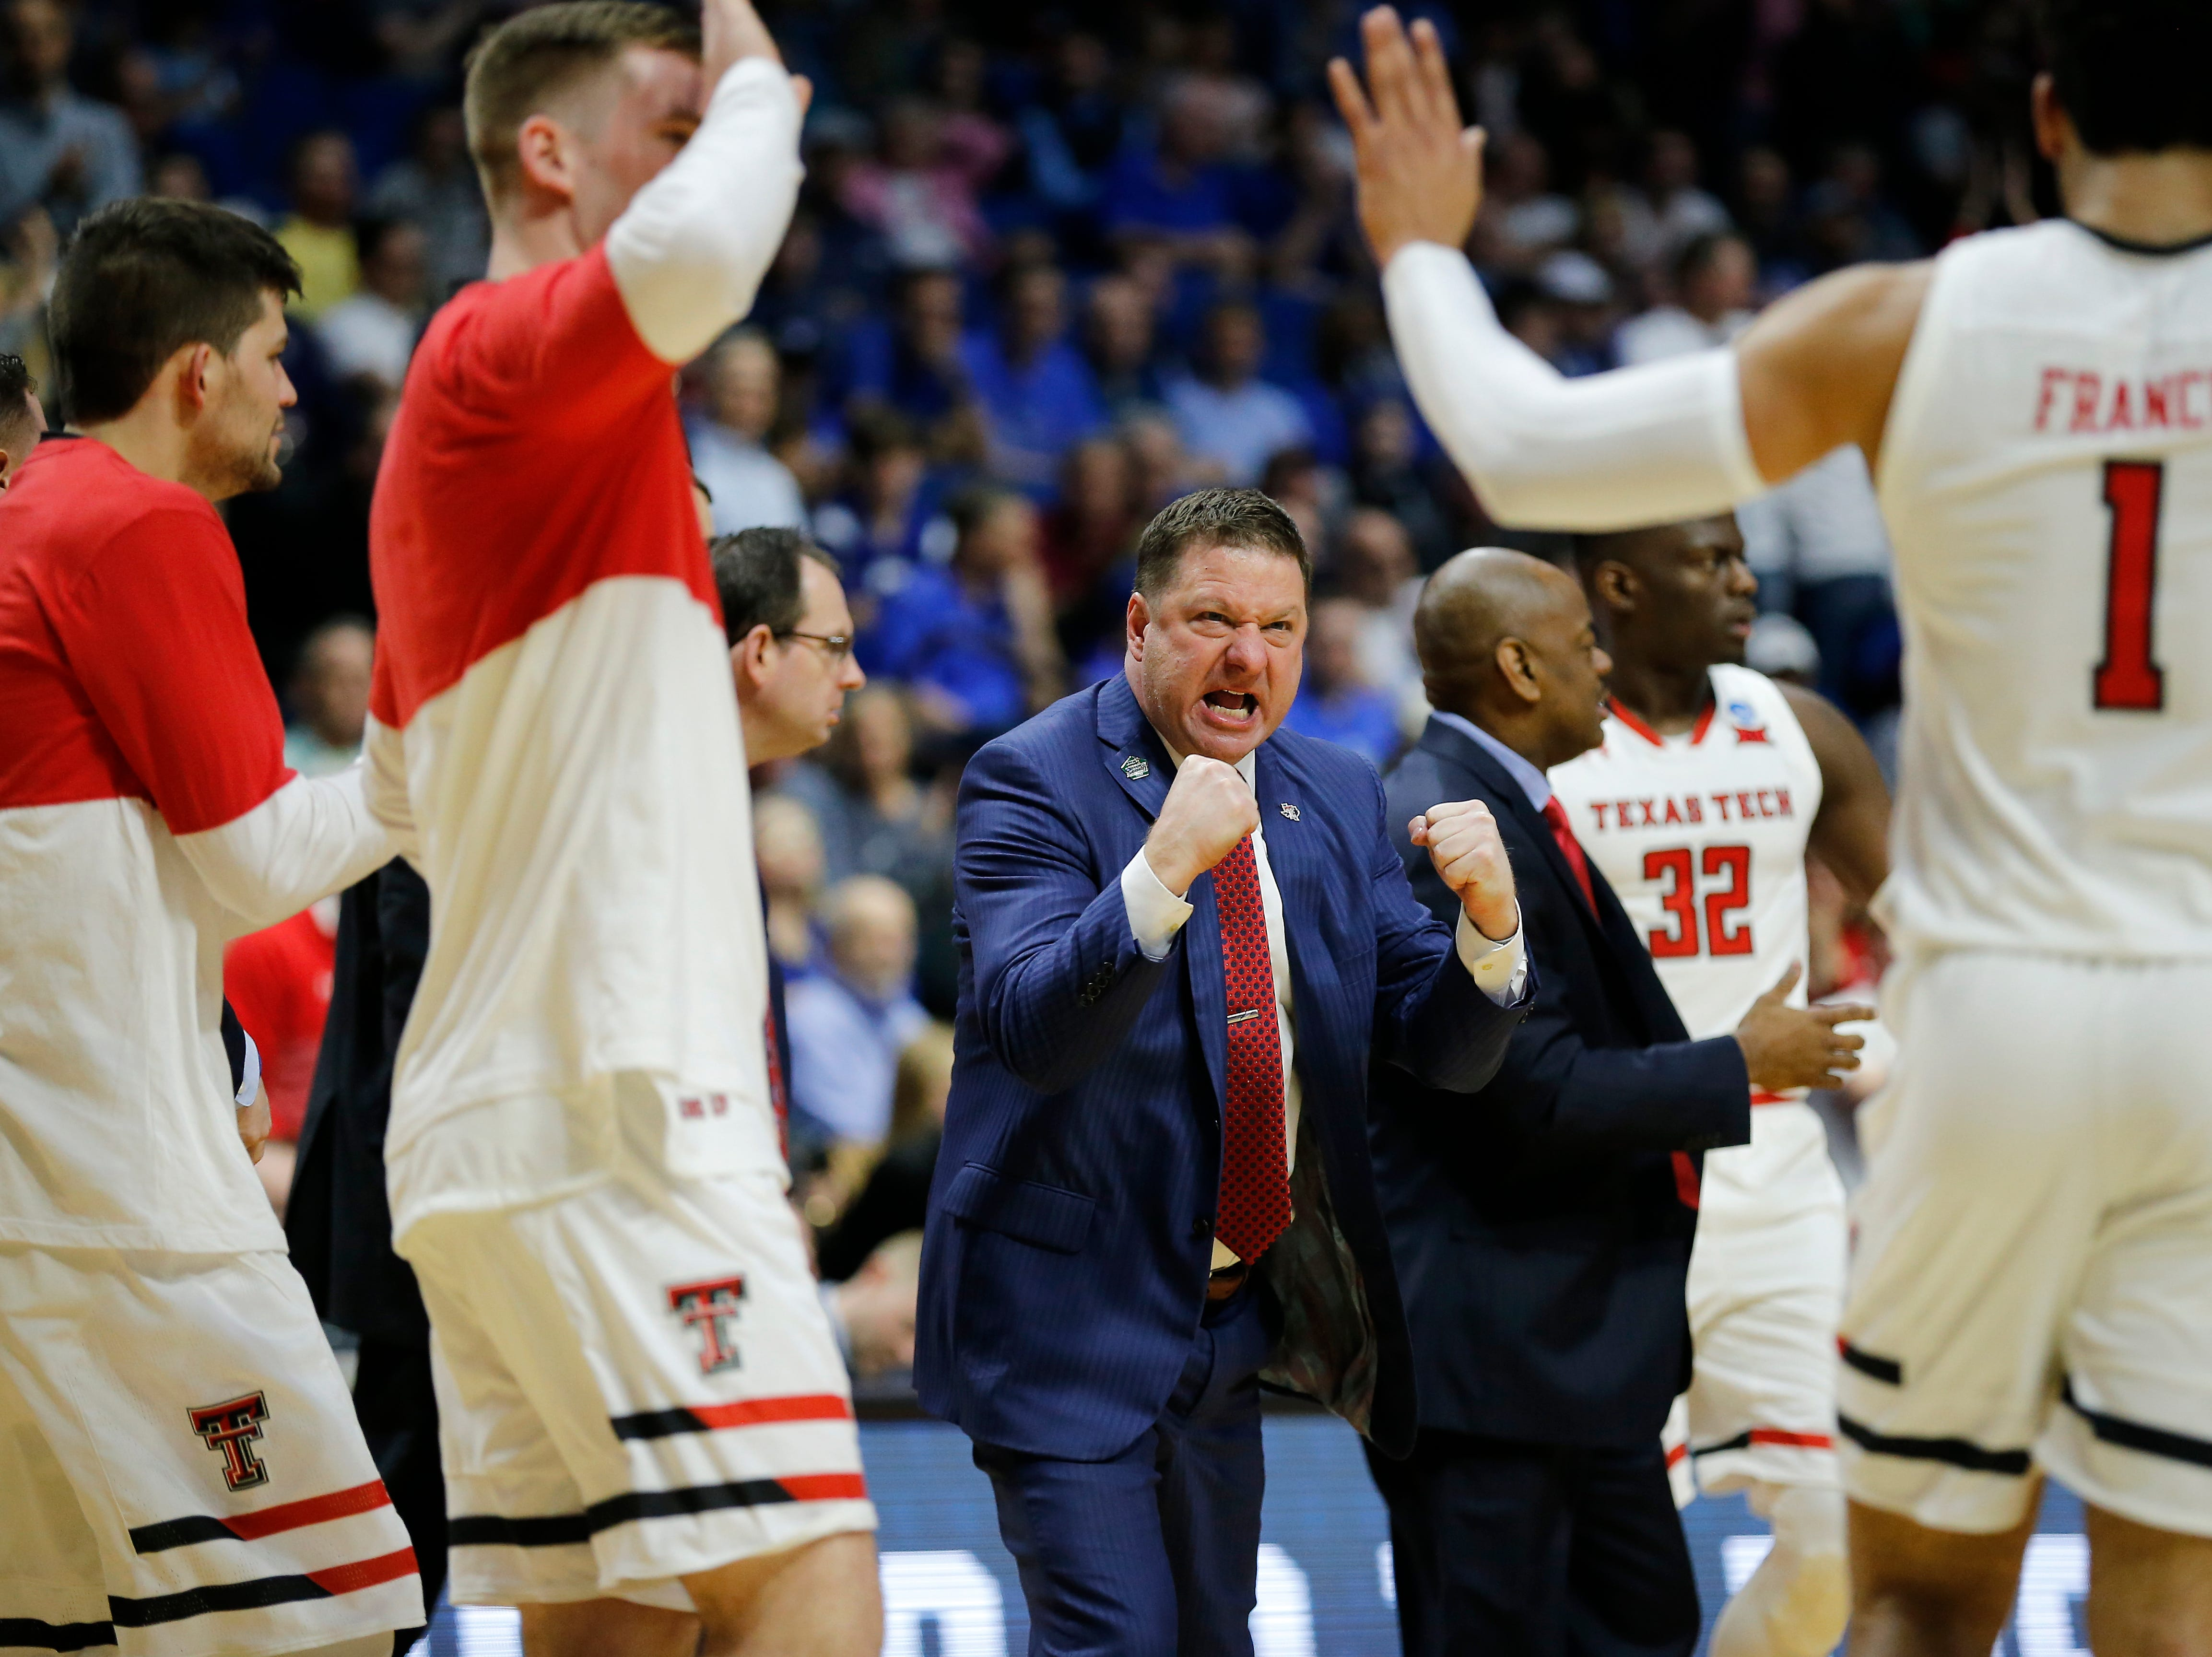 Texas Tech Red Raiders head coach Chris Beard cheers as his team extends a lead in the second half of the NCAA Tournament First Round game between the 14-seeded Northern Kentucky Norse and the 3-seeded Texas Tech Red Raiders the BOK Center in downtown Tulsa on Friday, March 22, 2019. NKU was knocked from the tournament with a 72-57 loss to the Red Raiders.